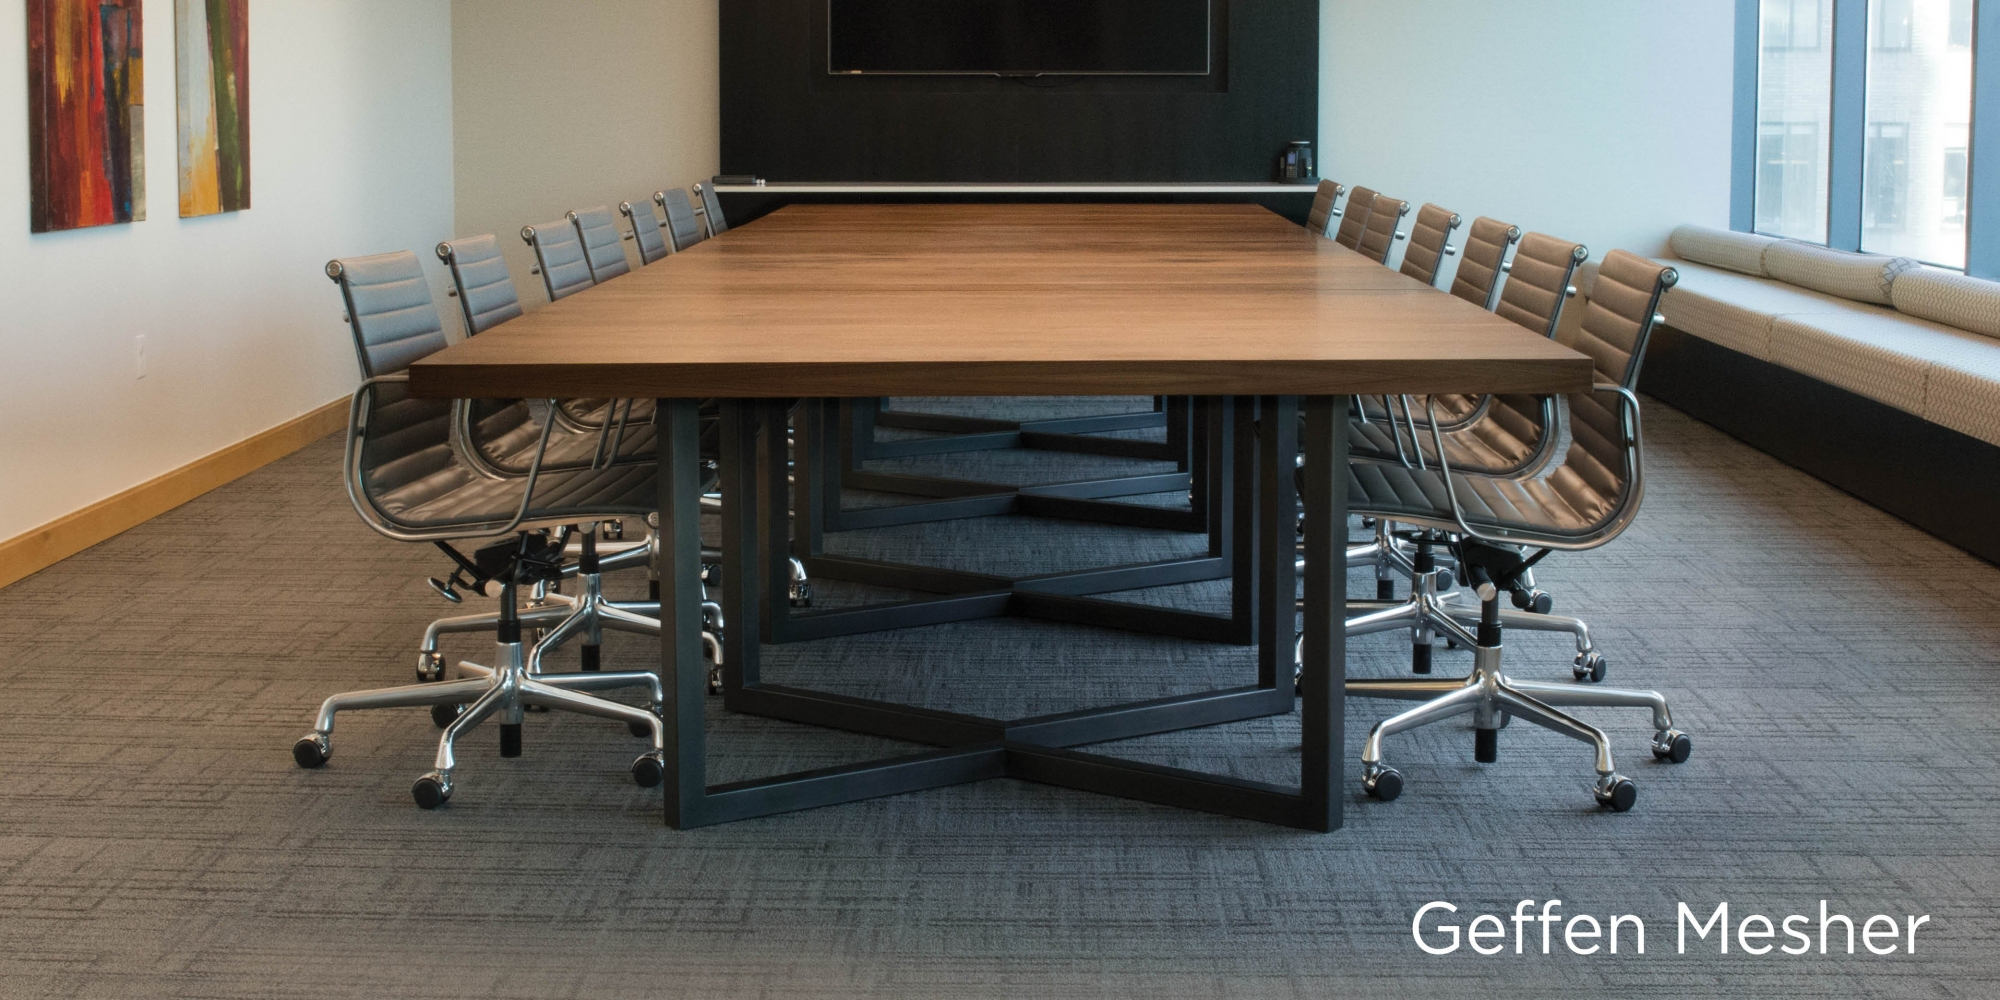 Geffen Mesher Custom Conference Table